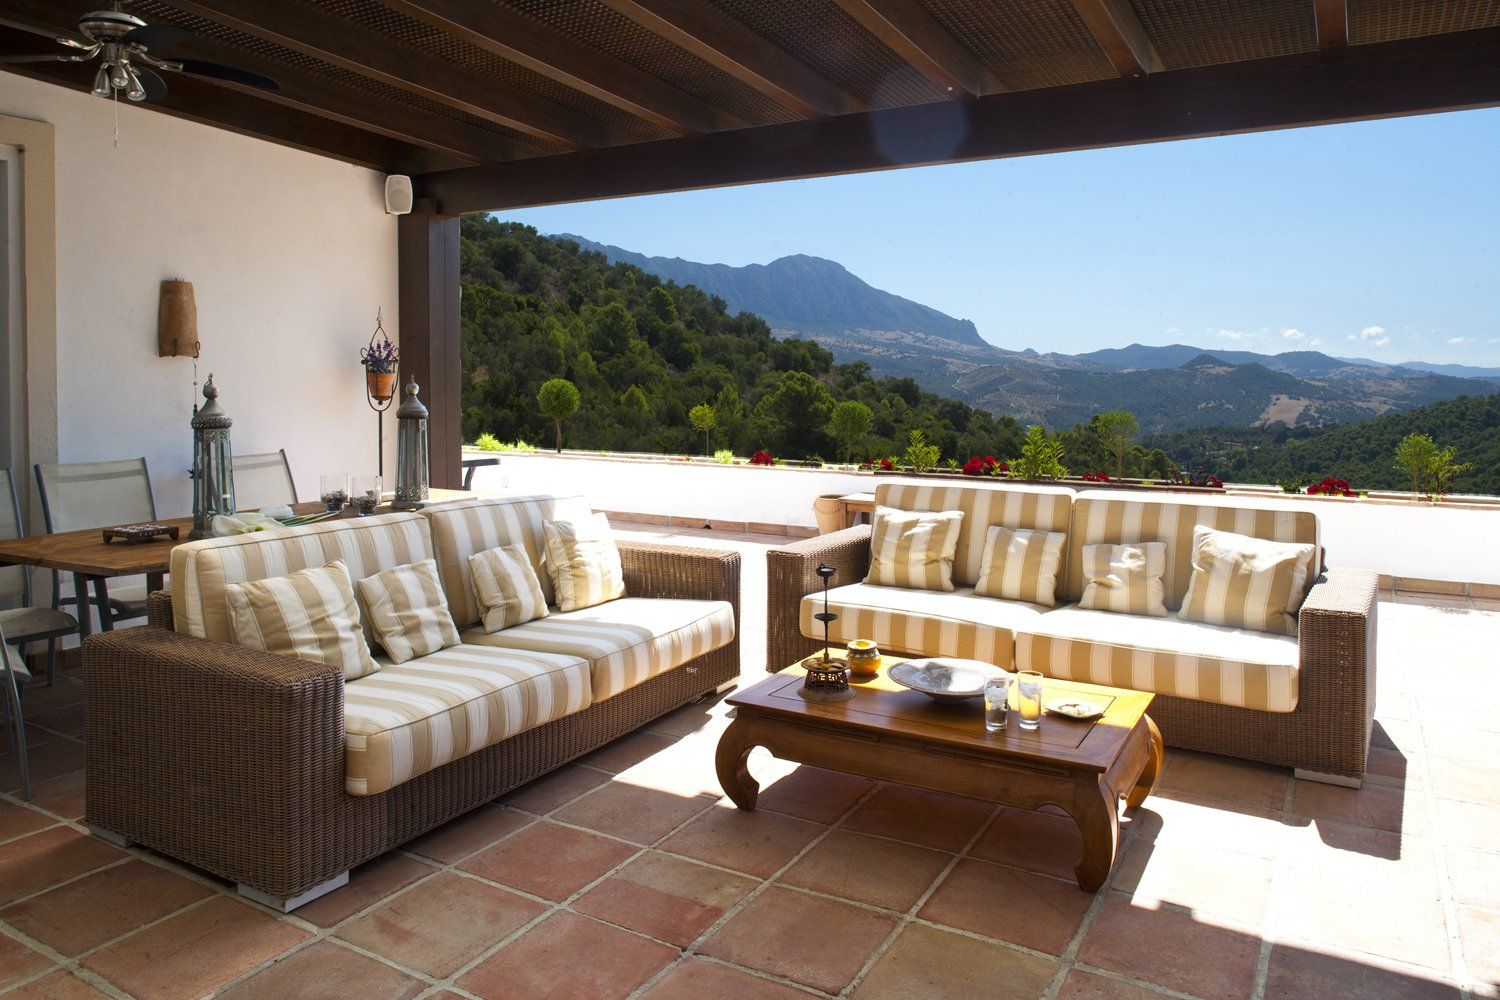 sofas on outdoor terrace